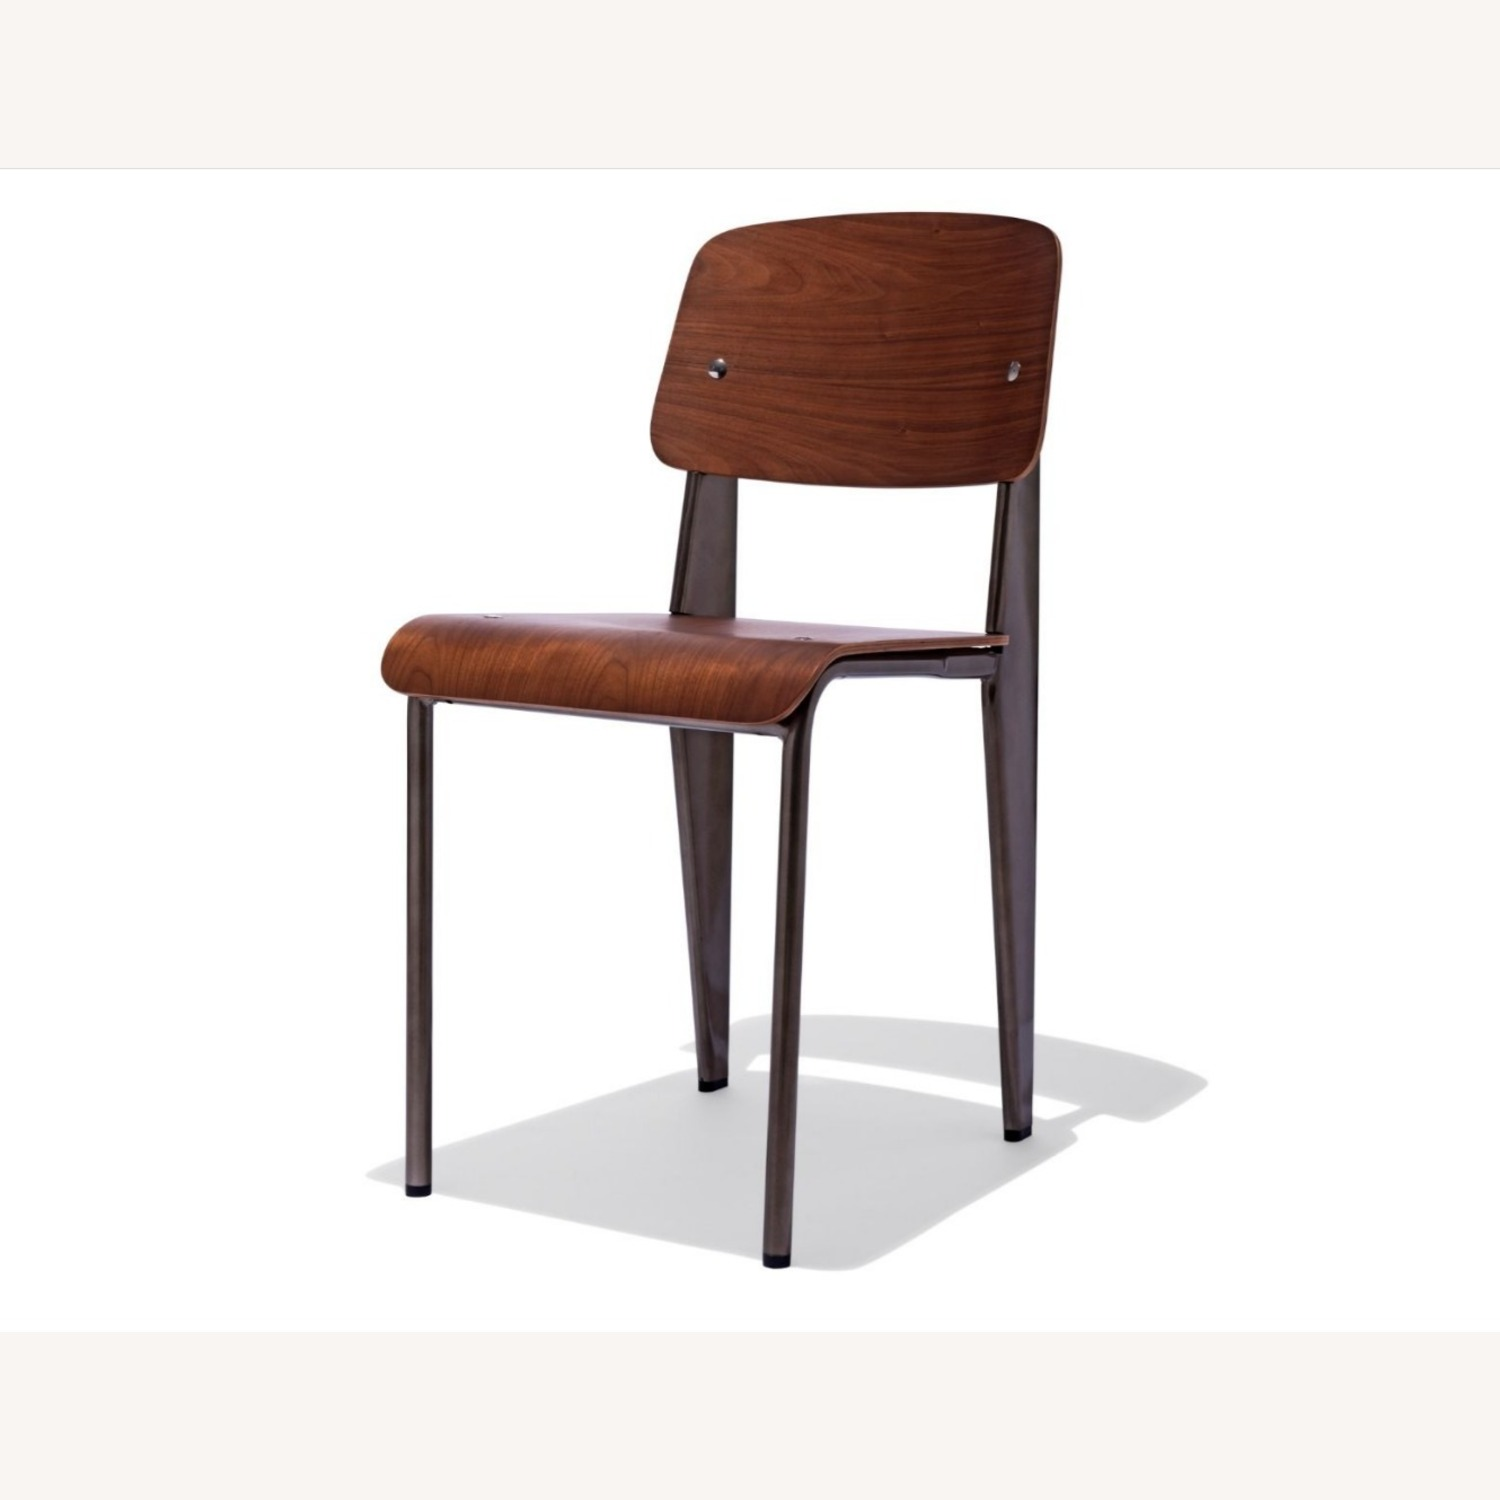 Industry West Prouve Standard Chair - image-1